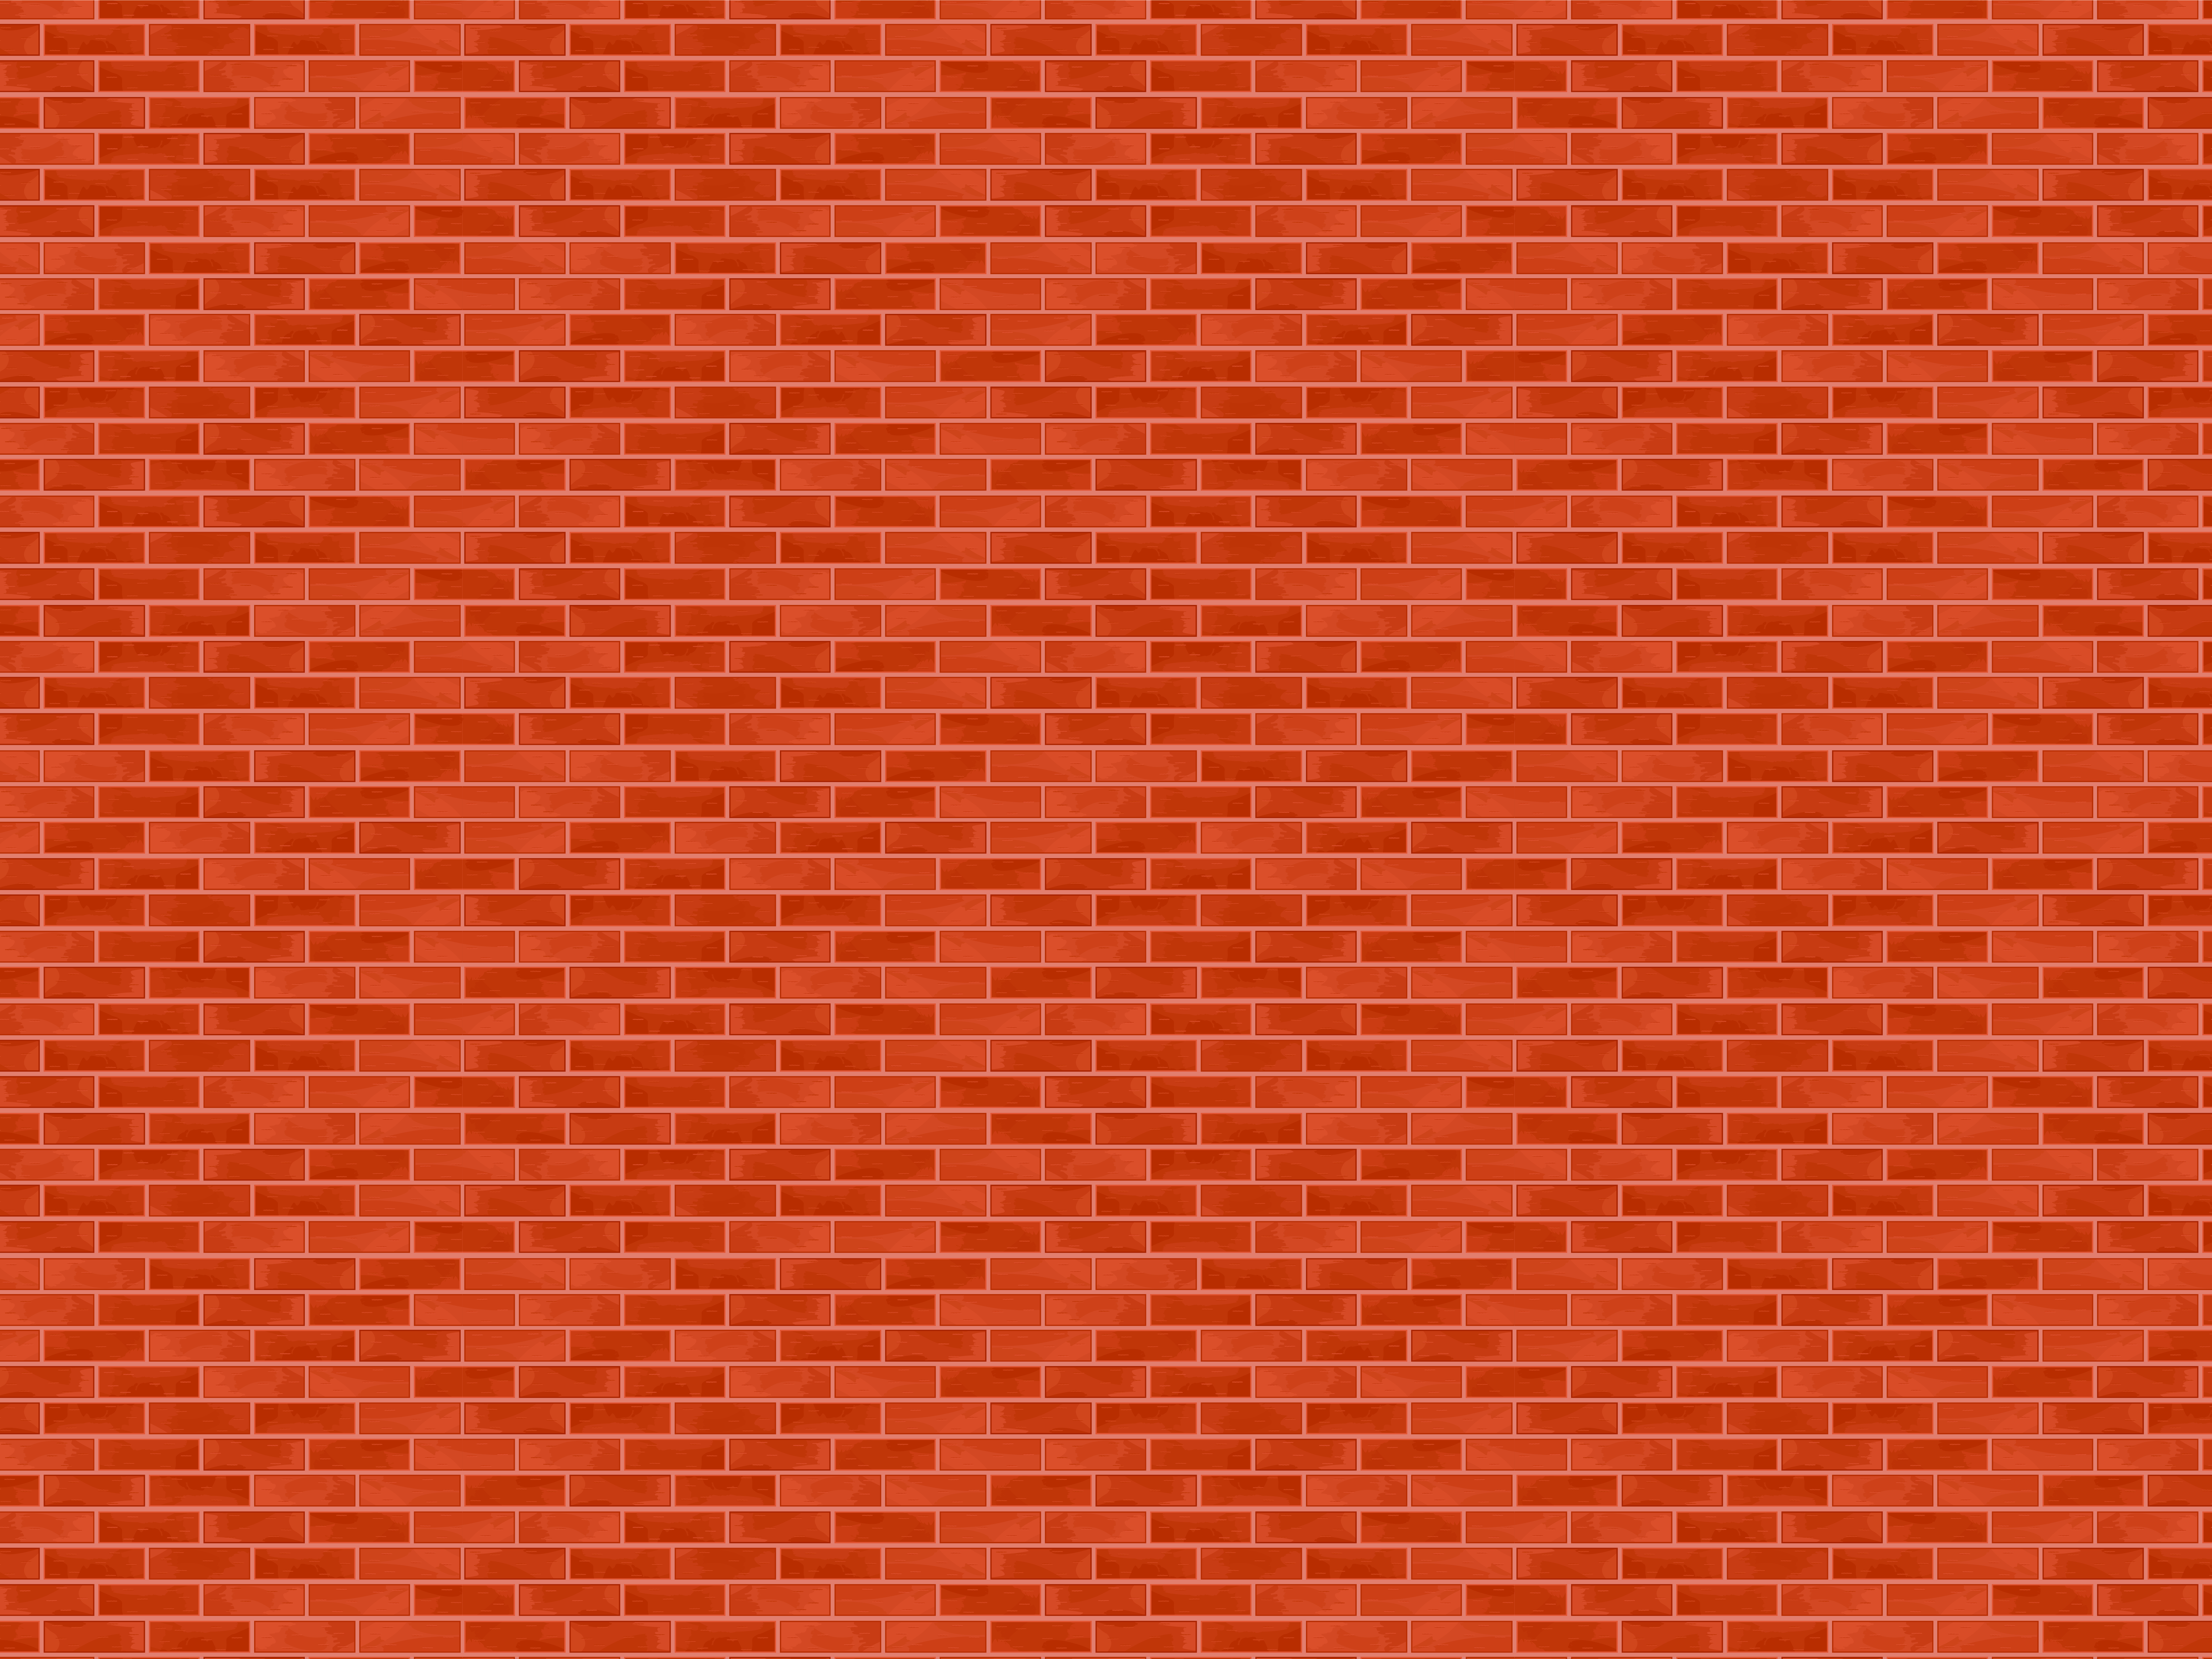 Red Brick Pattern Dollhouse Wallpaper Printable Realistic Outdoor